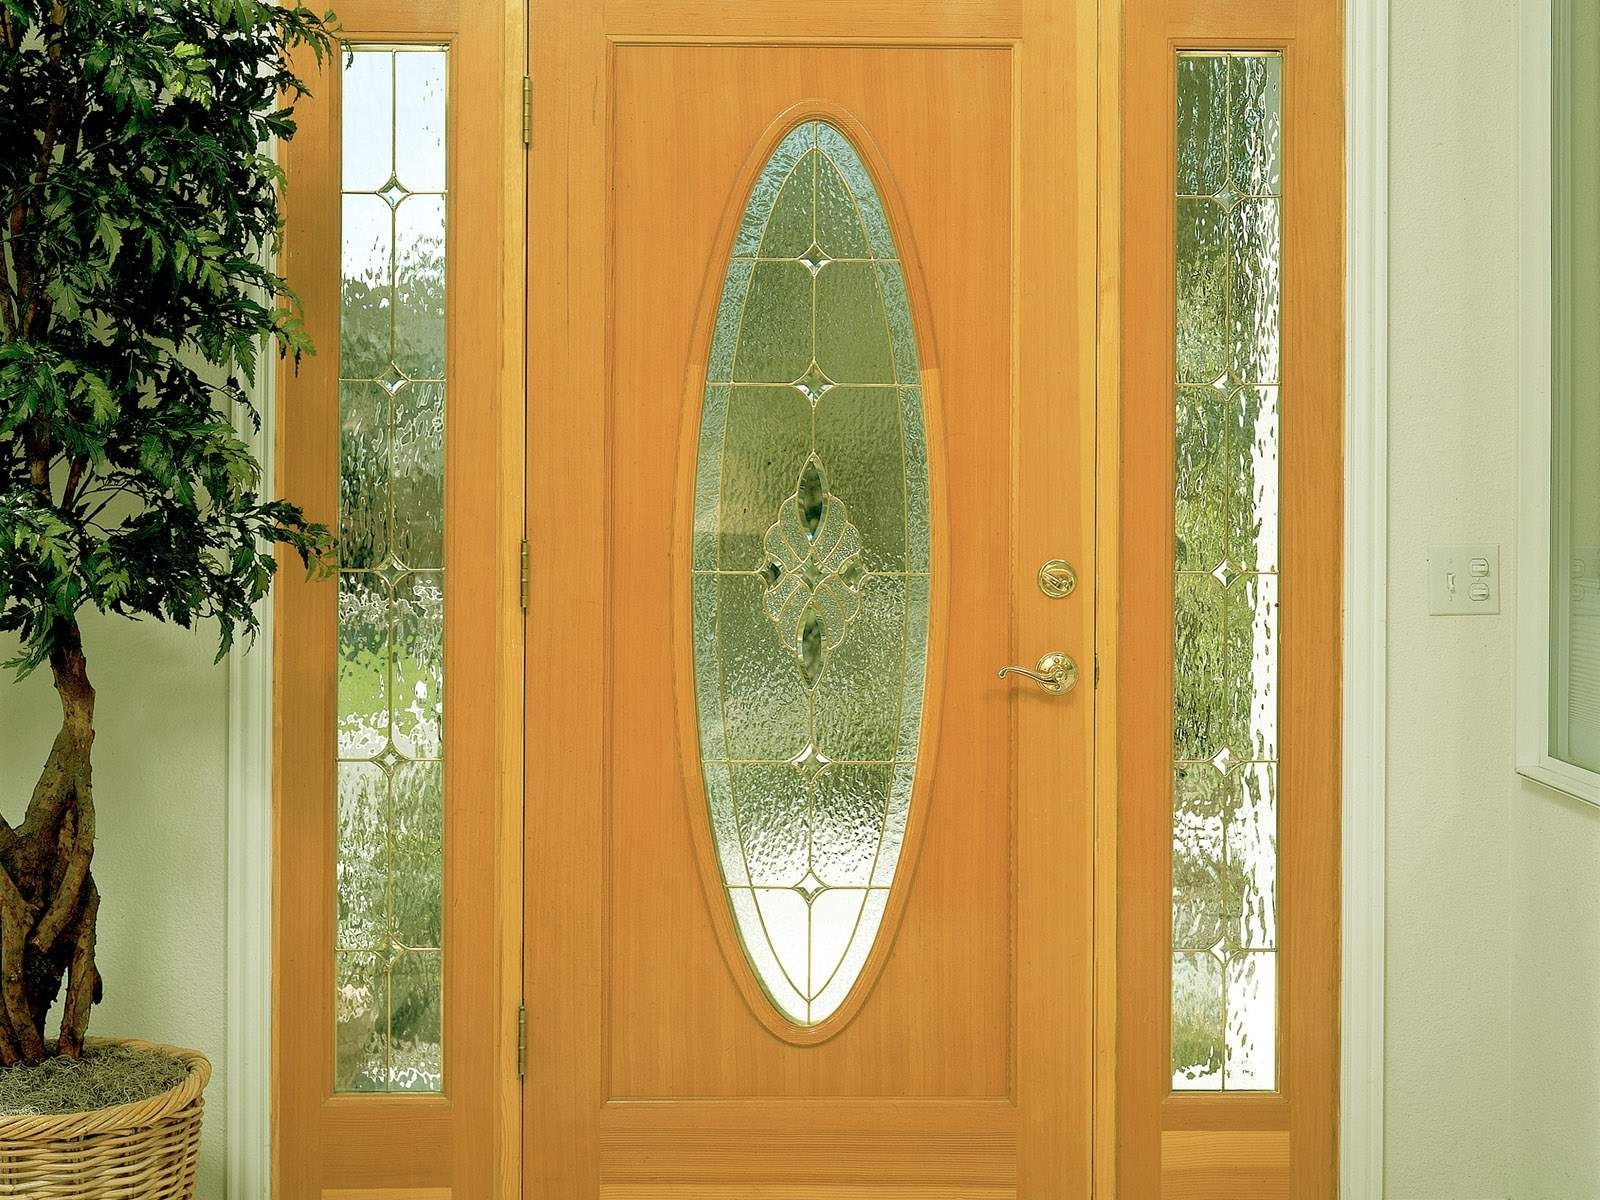 Door Design In Wood photo. 17 Best images about door design on Pinterest   Entrance doors